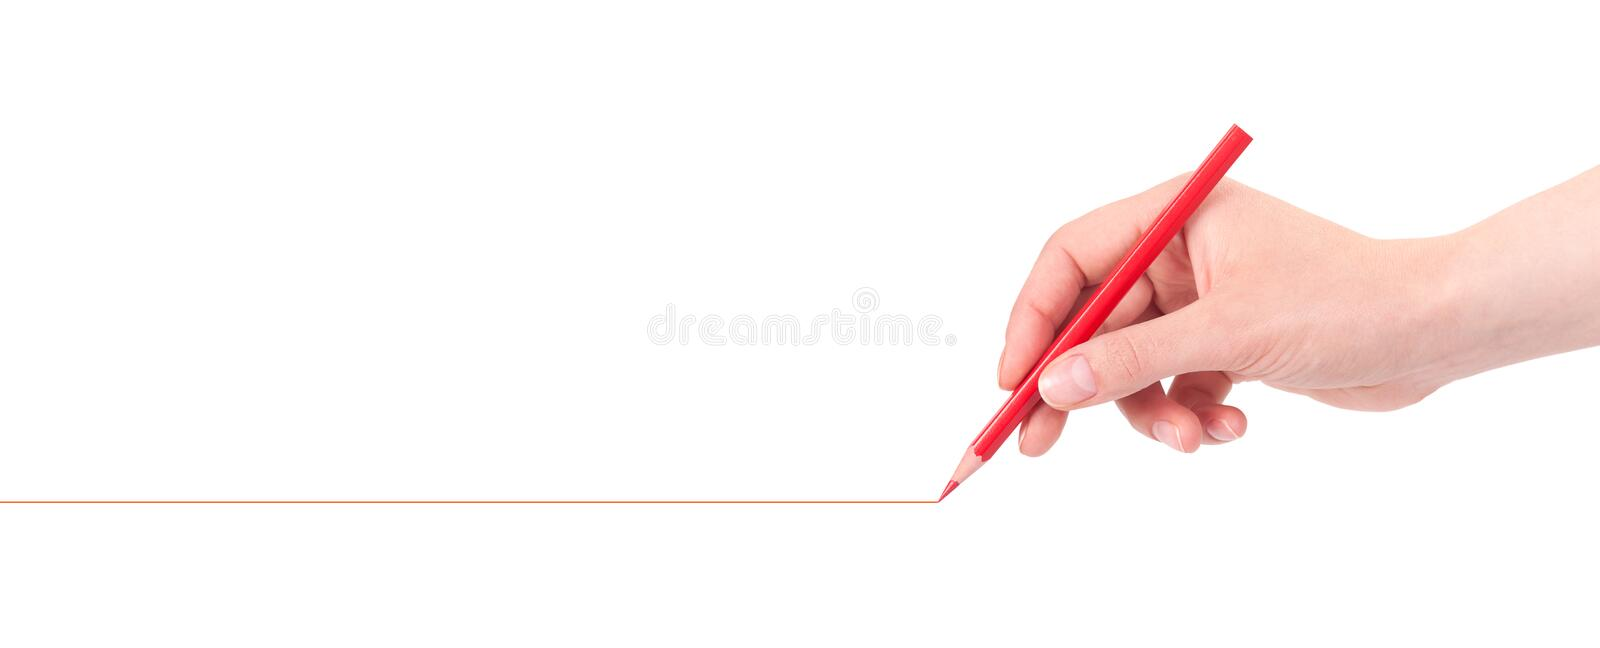 Hand drawing red line with pencil. On a white background royalty free stock photos